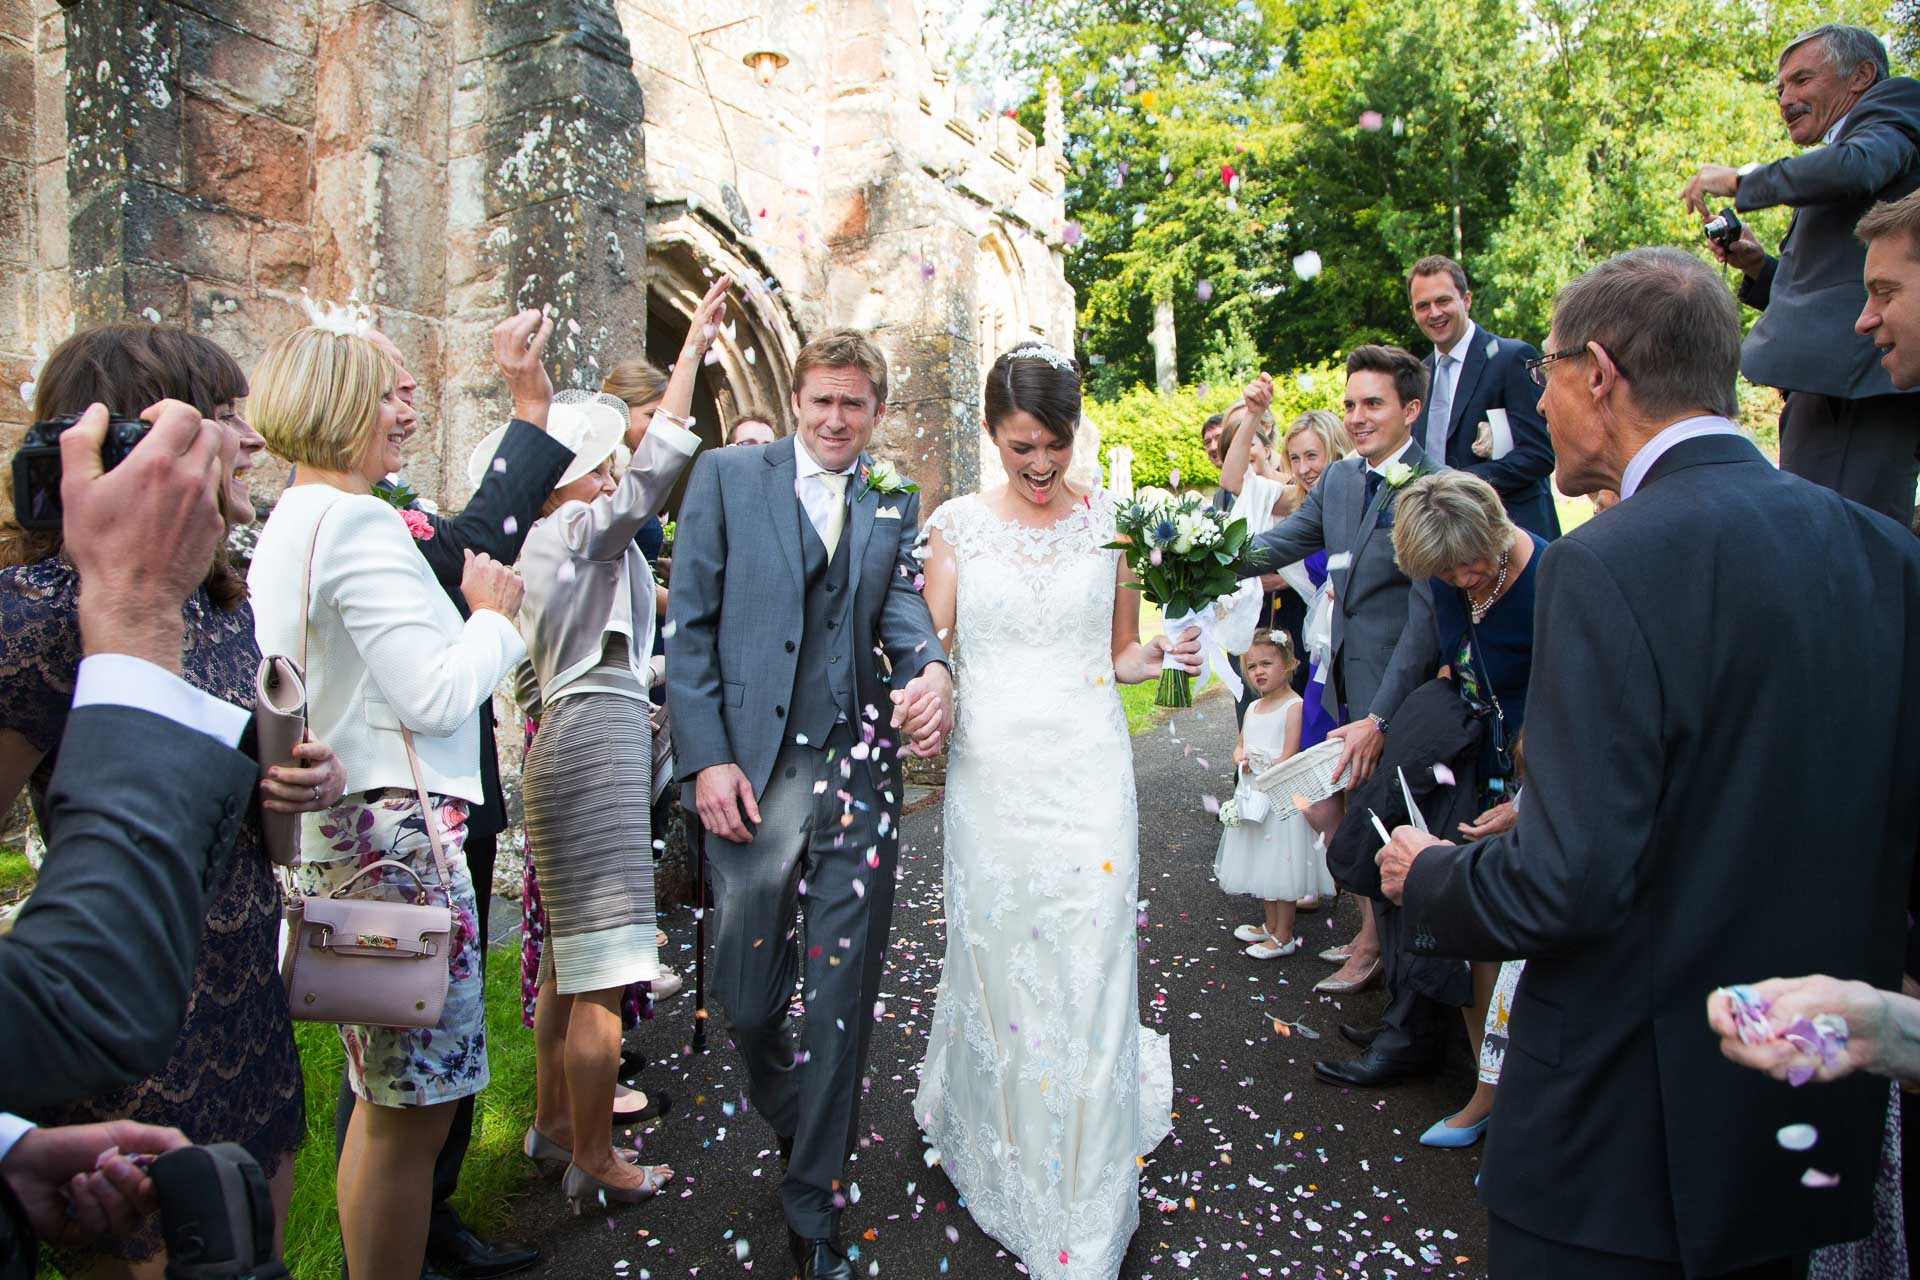 Crowcombe court wedding 26